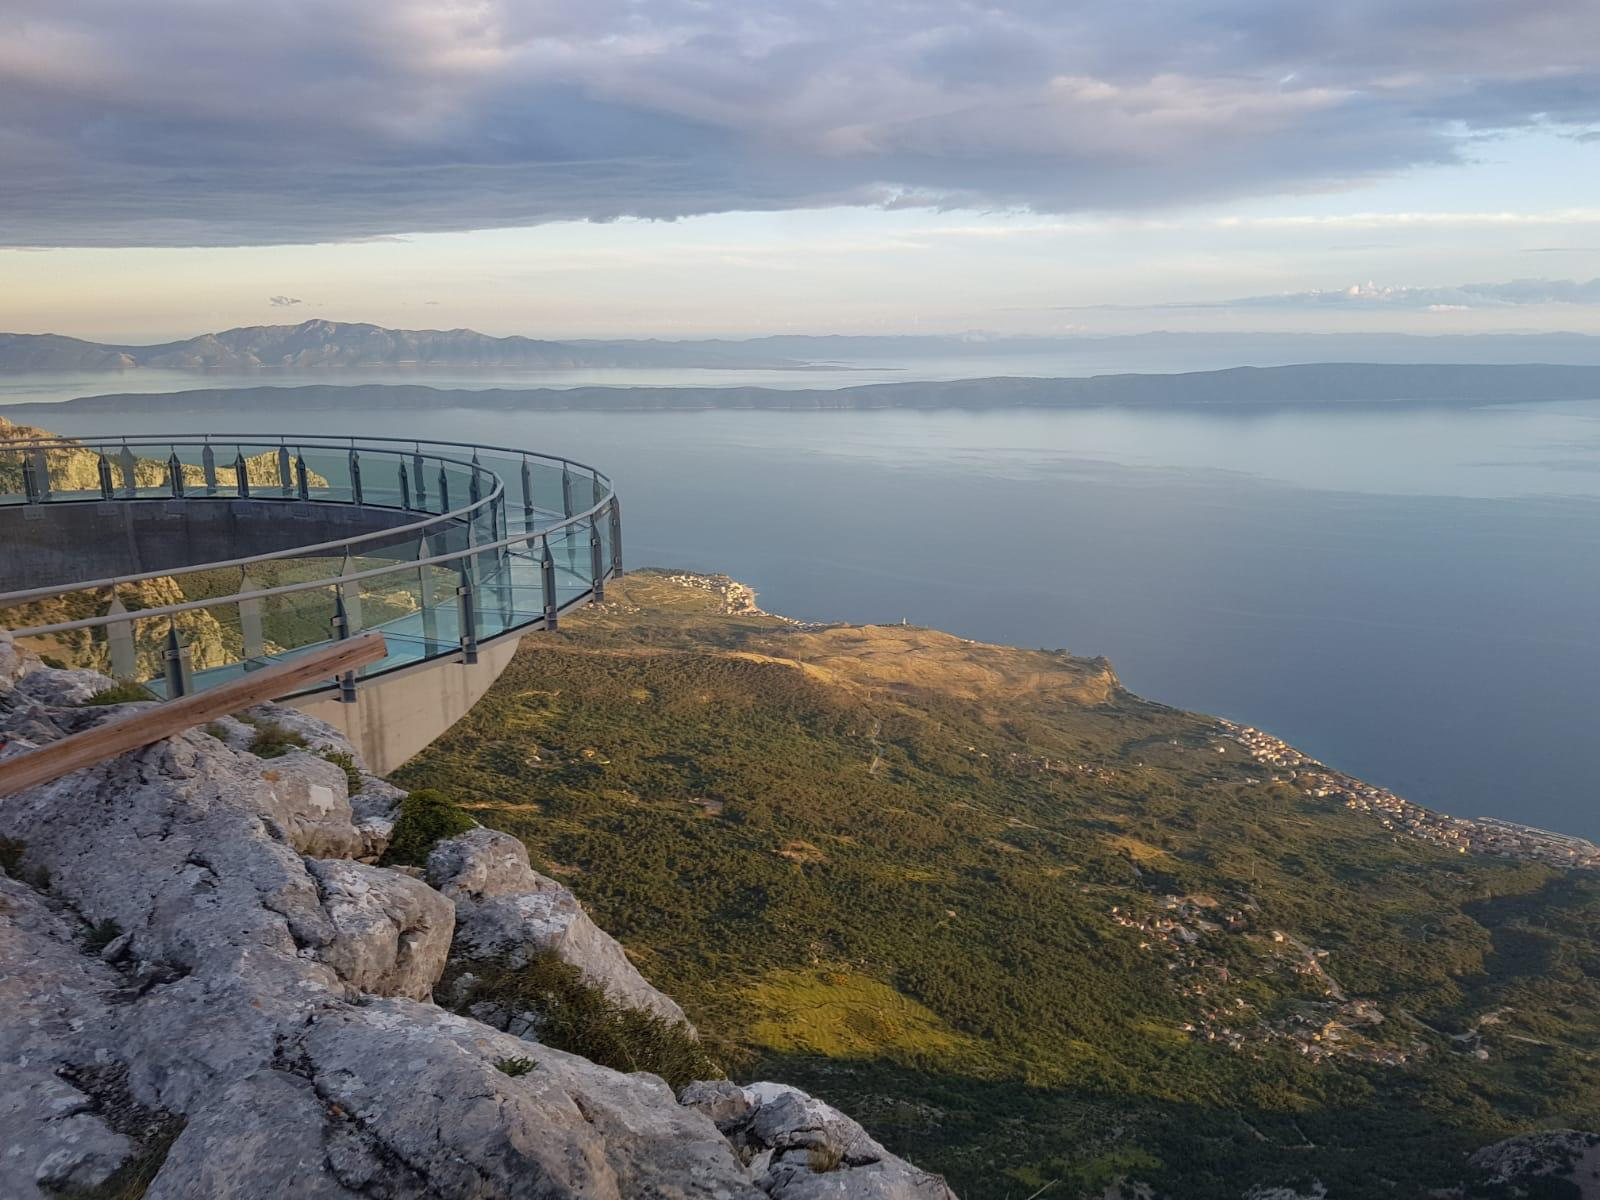 View of the Makarska Riviera from the Skywalk